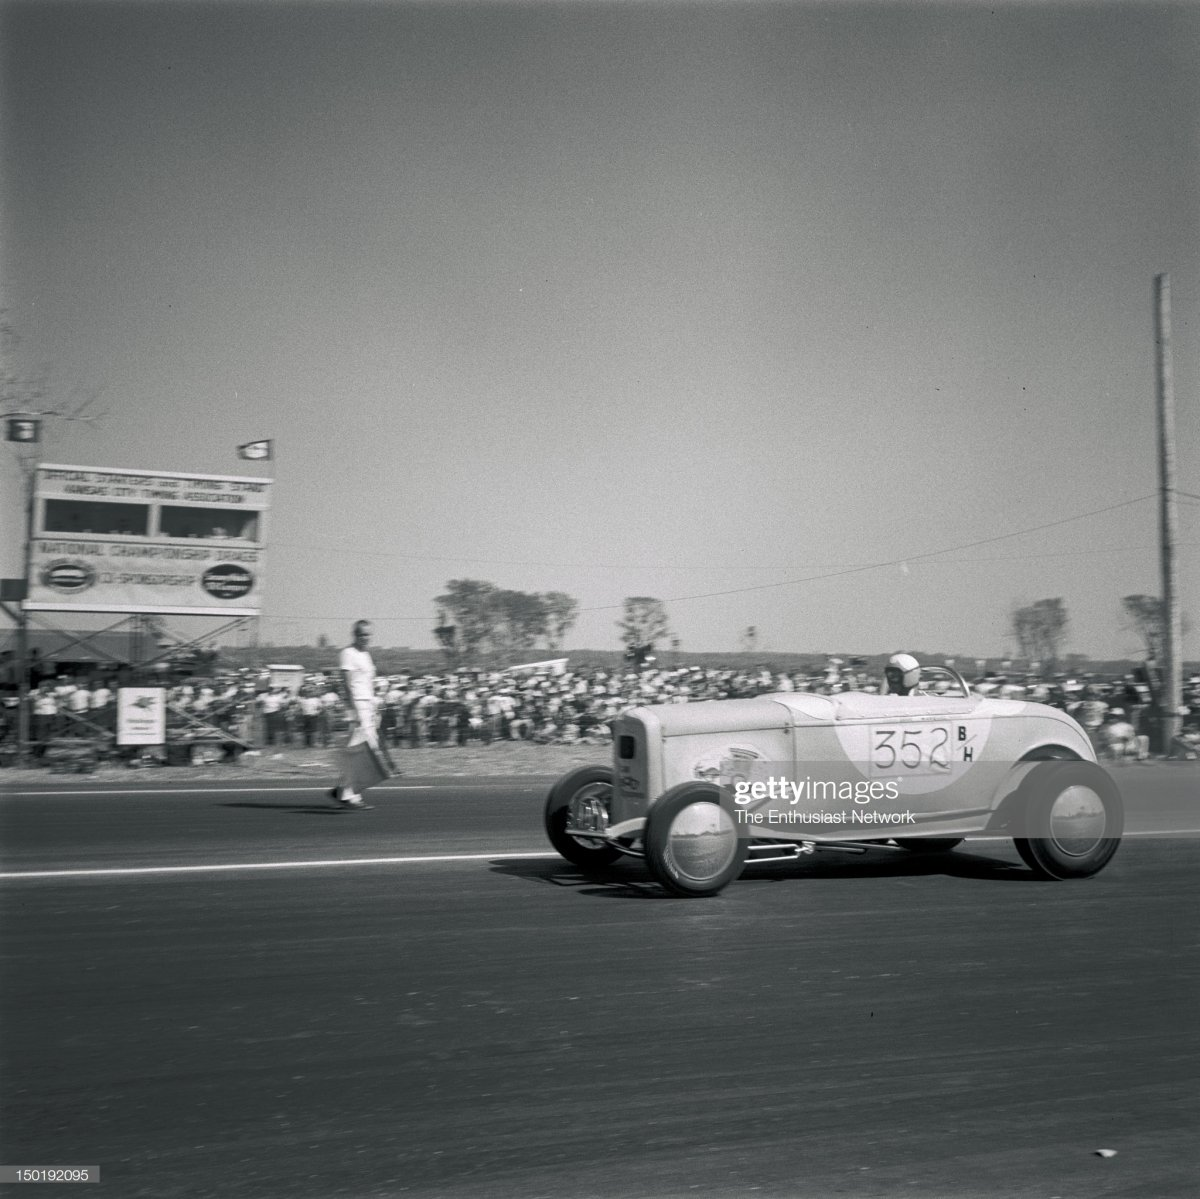 65 1956 National Championship Drag Races - Kansas City, Missou.jpg